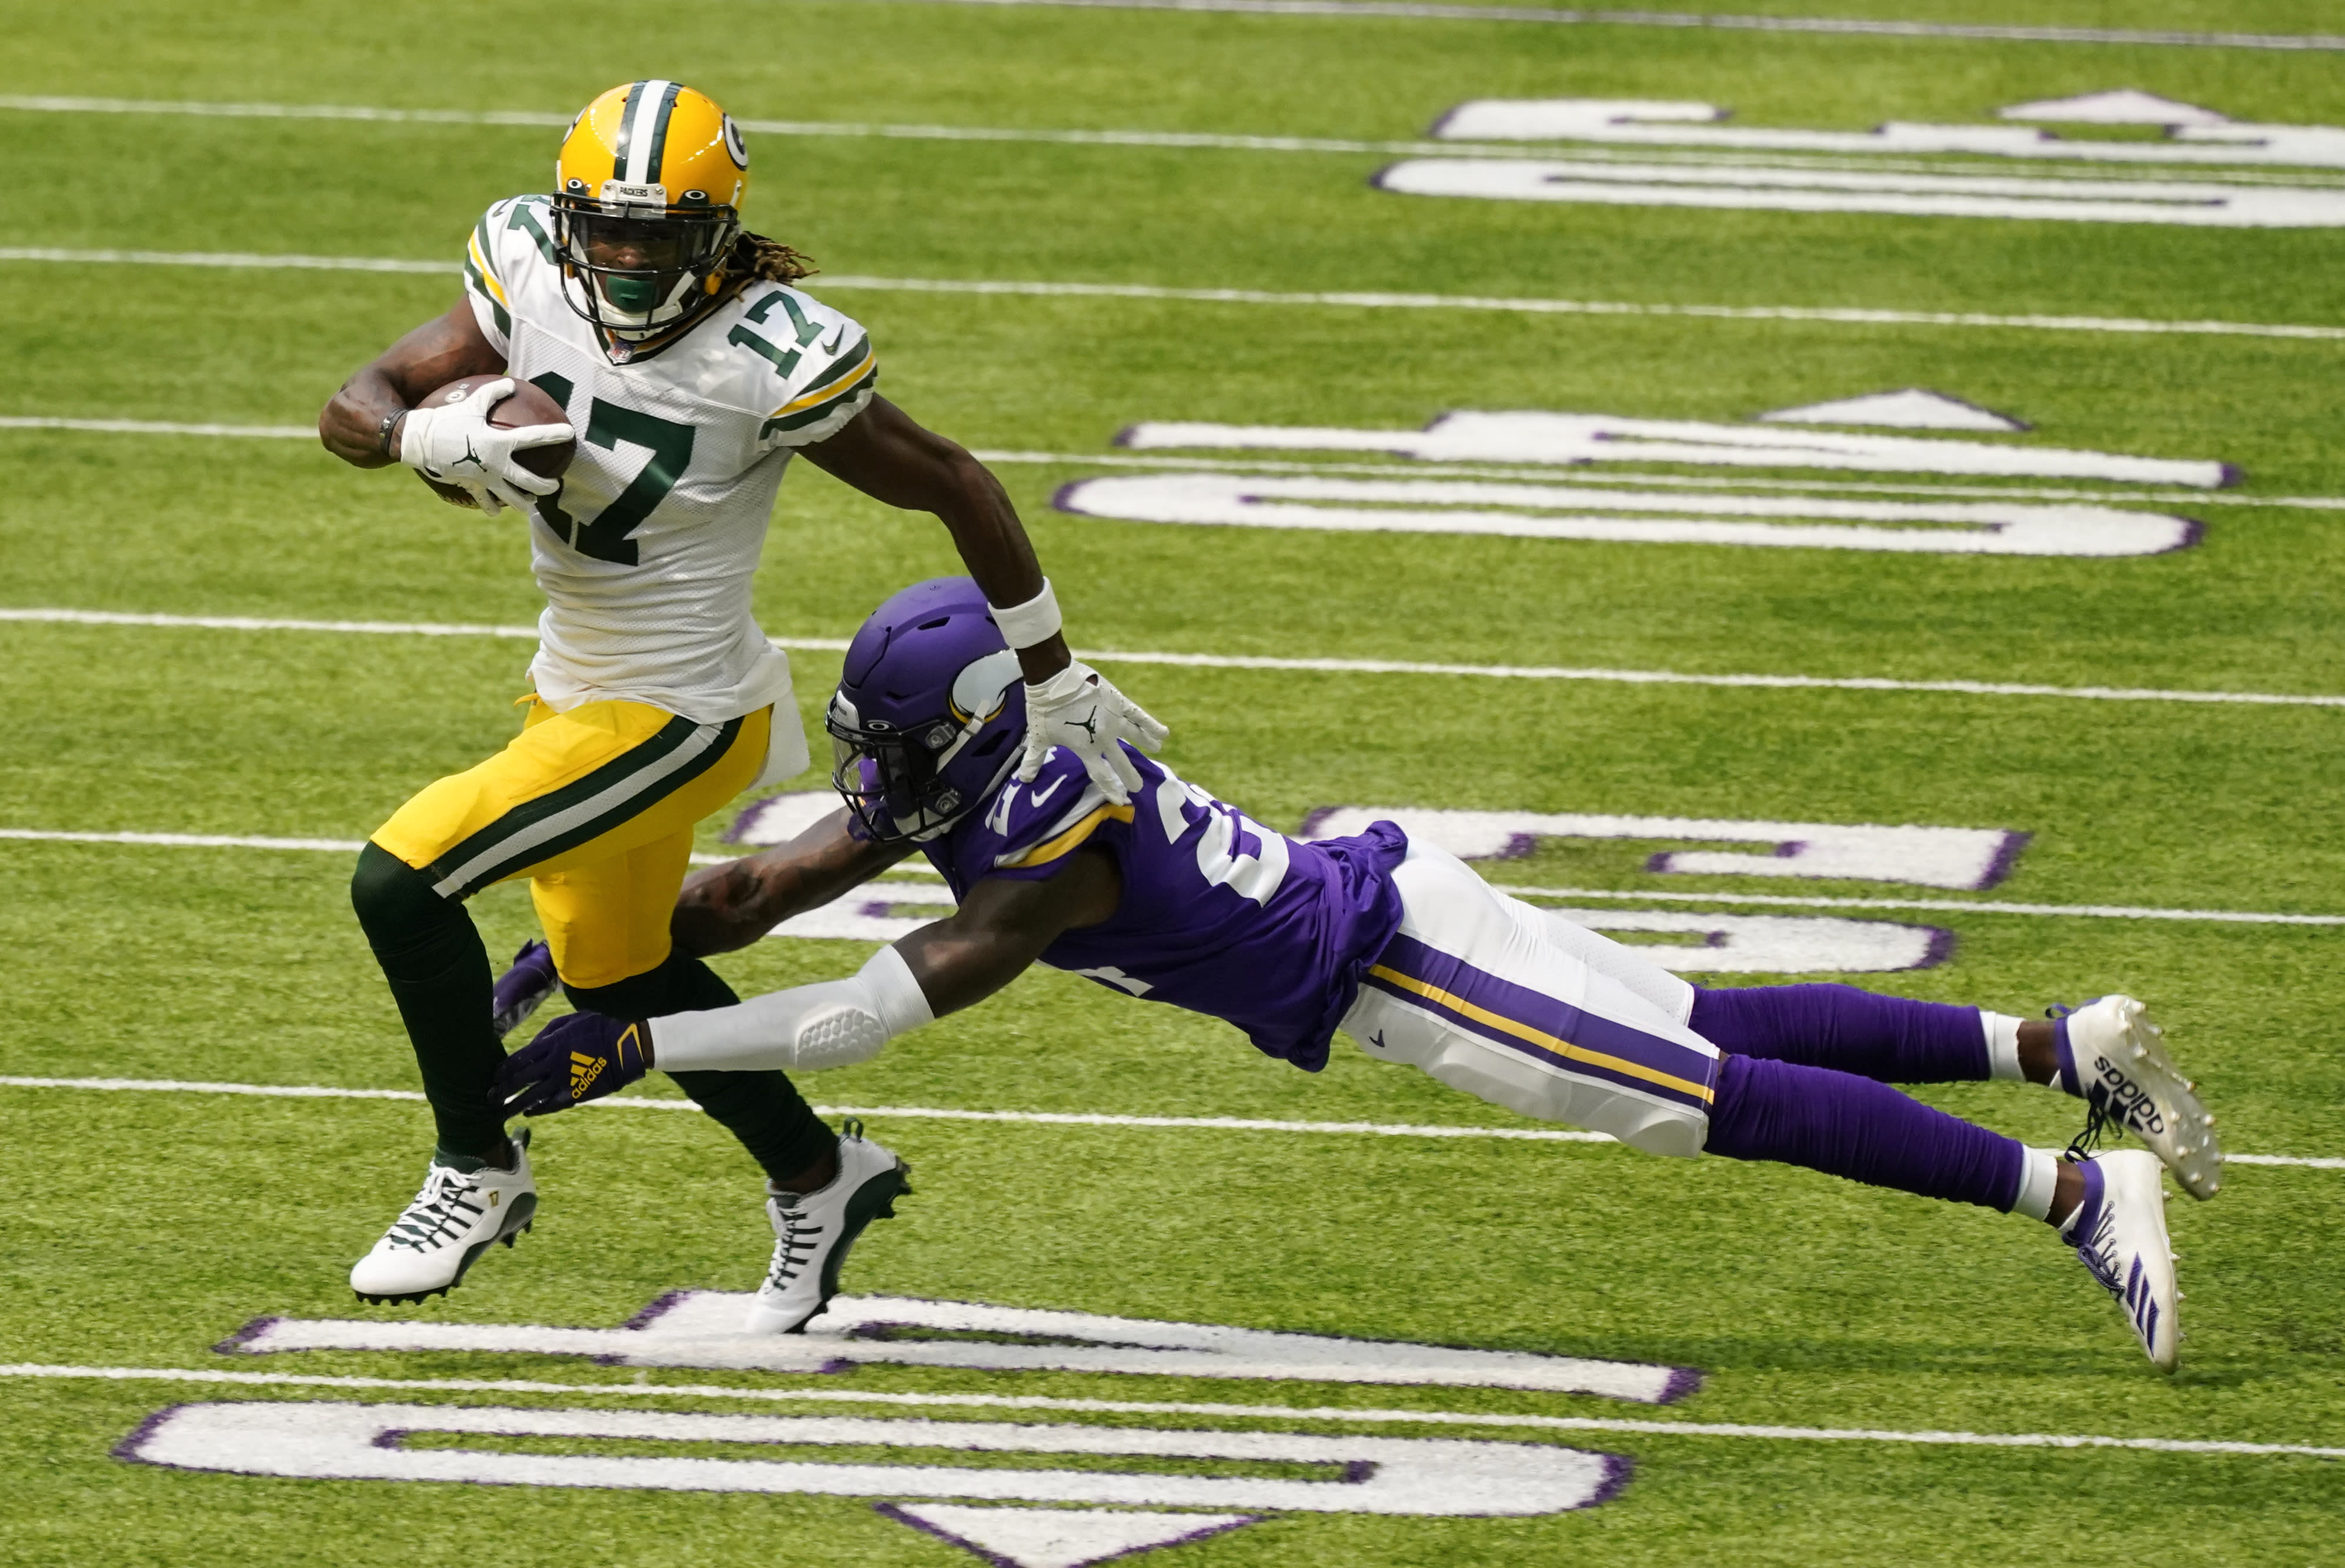 Green Bay Packers wide receiver Davante Adams breaks a tackle by Minnesota Vikings defensive back Holton Hill (24) during the first half of an NFL football game, Sunday, Sept. 13, 2020, in Minneapolis. (AP Photo/Jim Mone)